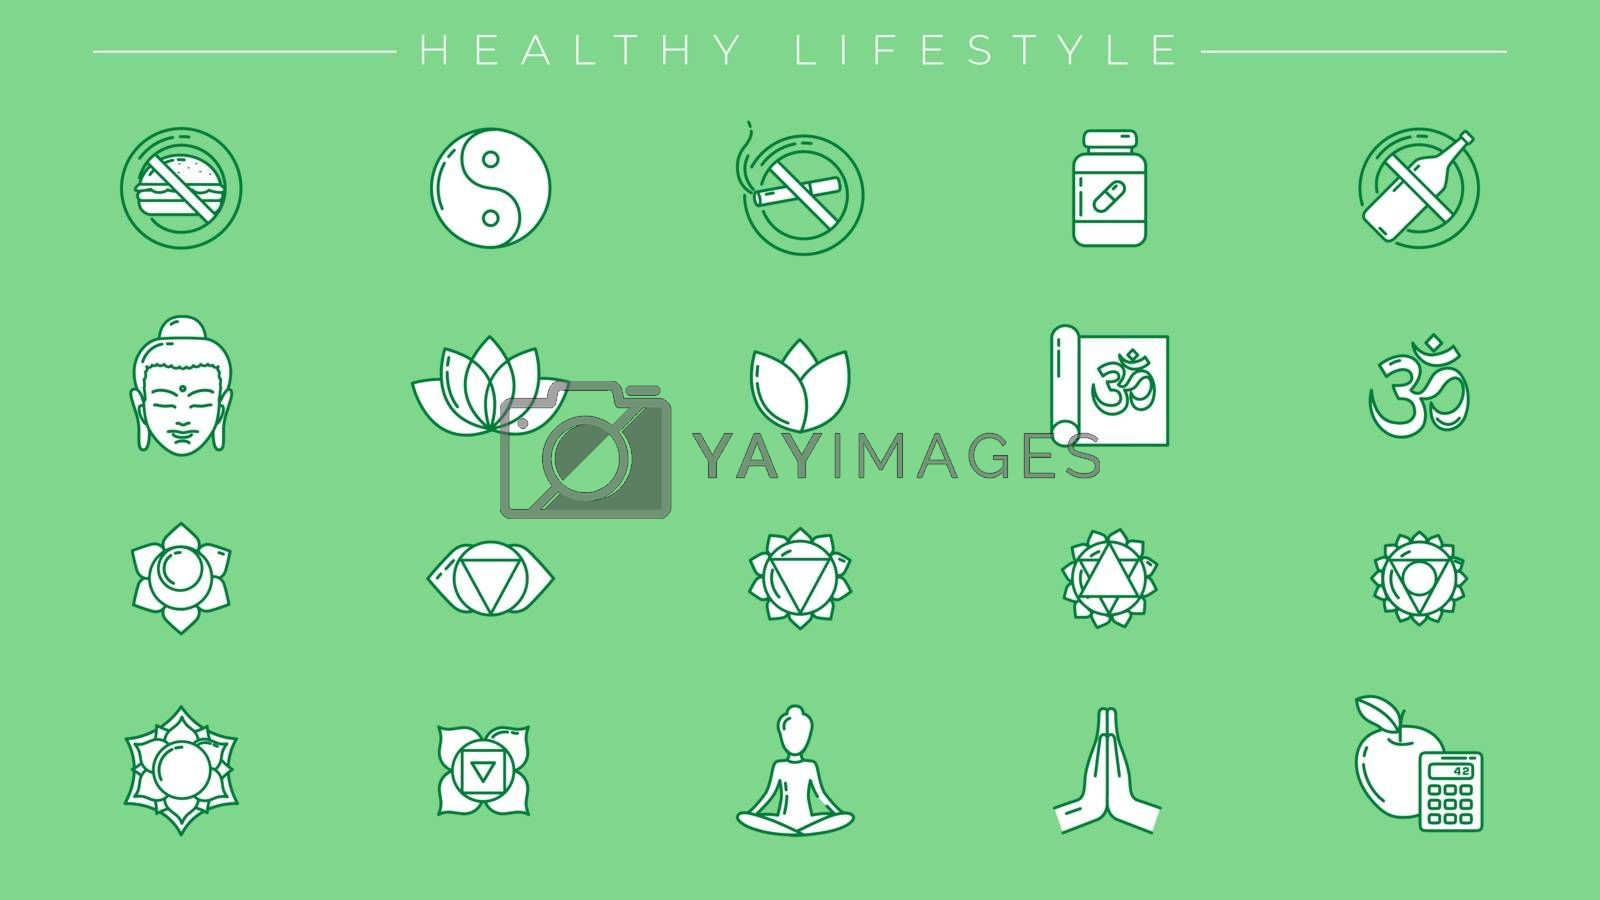 One of the modern line icons sets on the theme of Healthy Lifestyle.